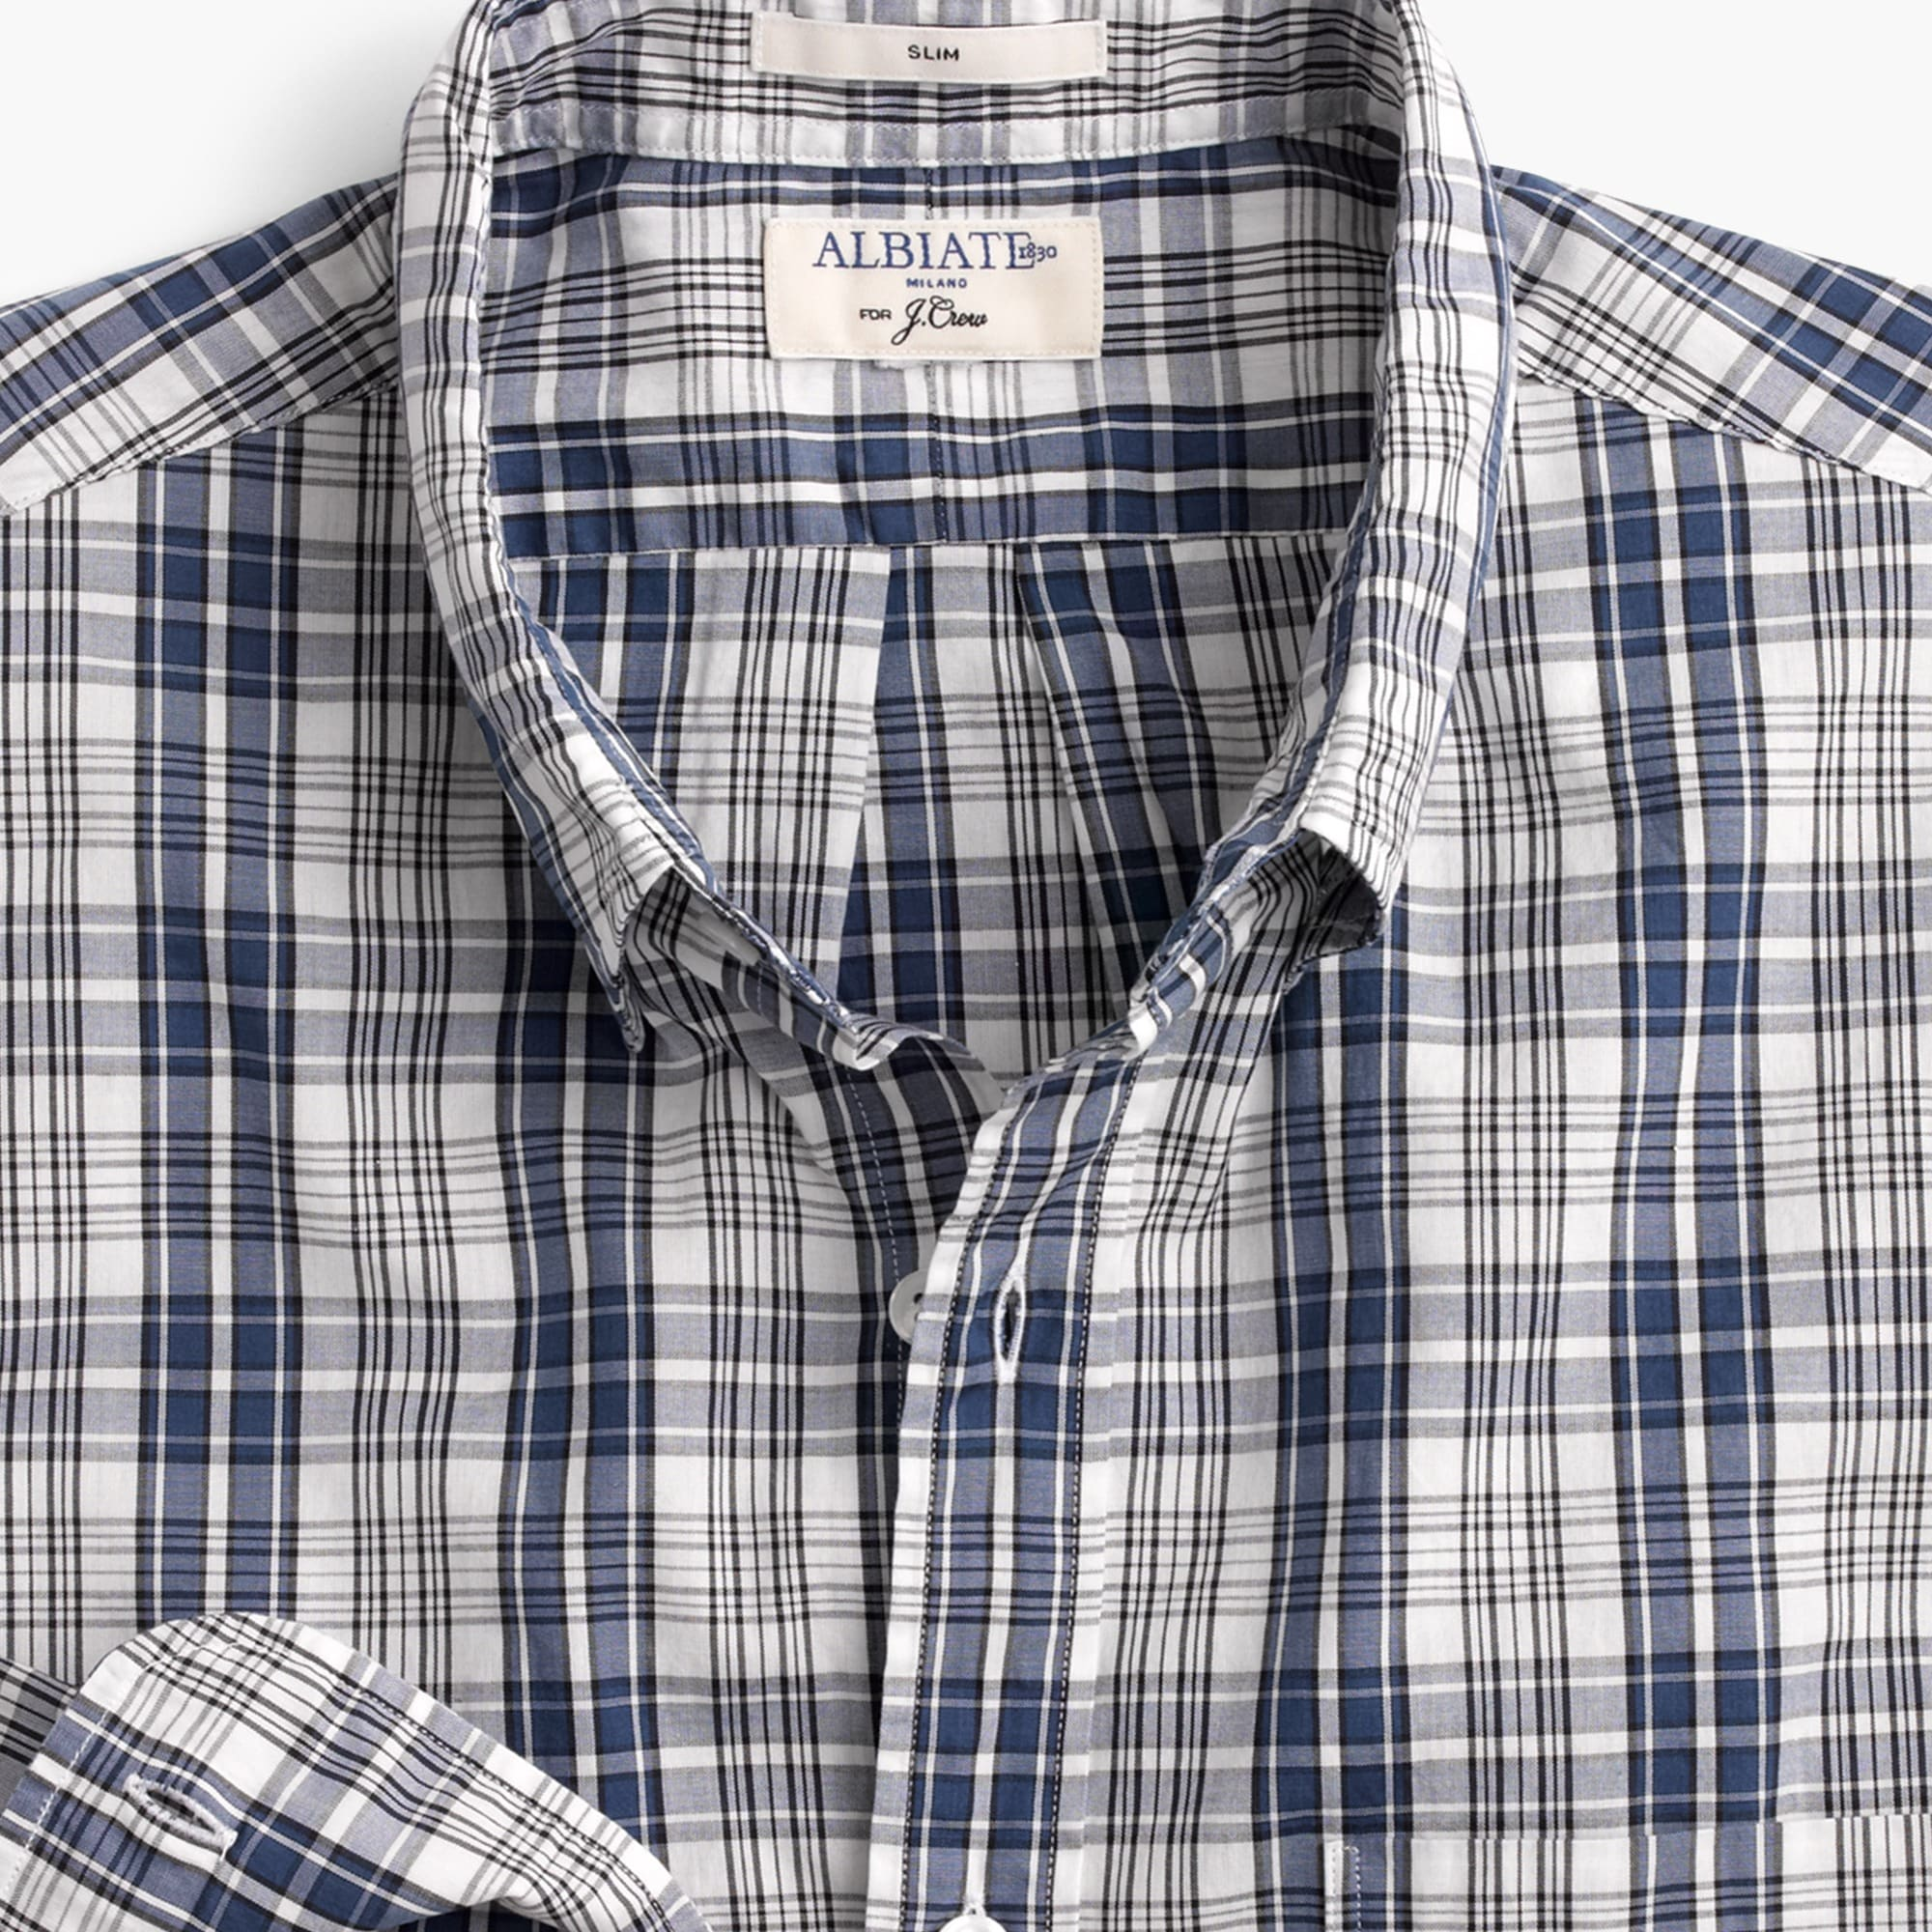 Slim Albiate 1830 for J.Crew washed shirt in plaid